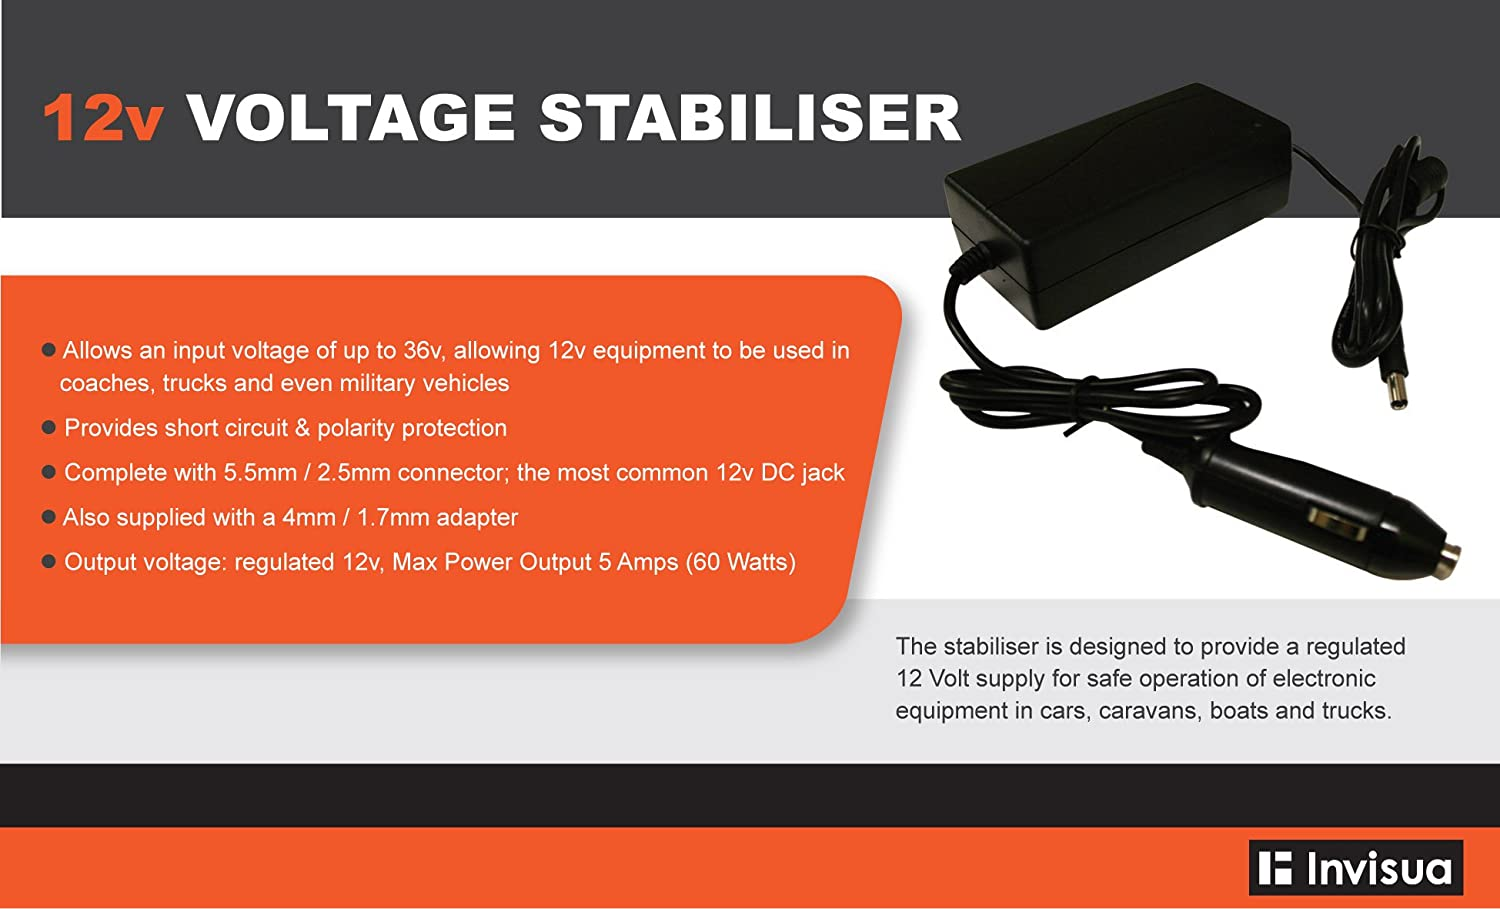 Visua 12v Voltage Stabiliser Regulator For In Vehicle Use Of Lcd Volt Regulated Power Supply Circuit Tv And Other Electronic Equipment Computers Accessories